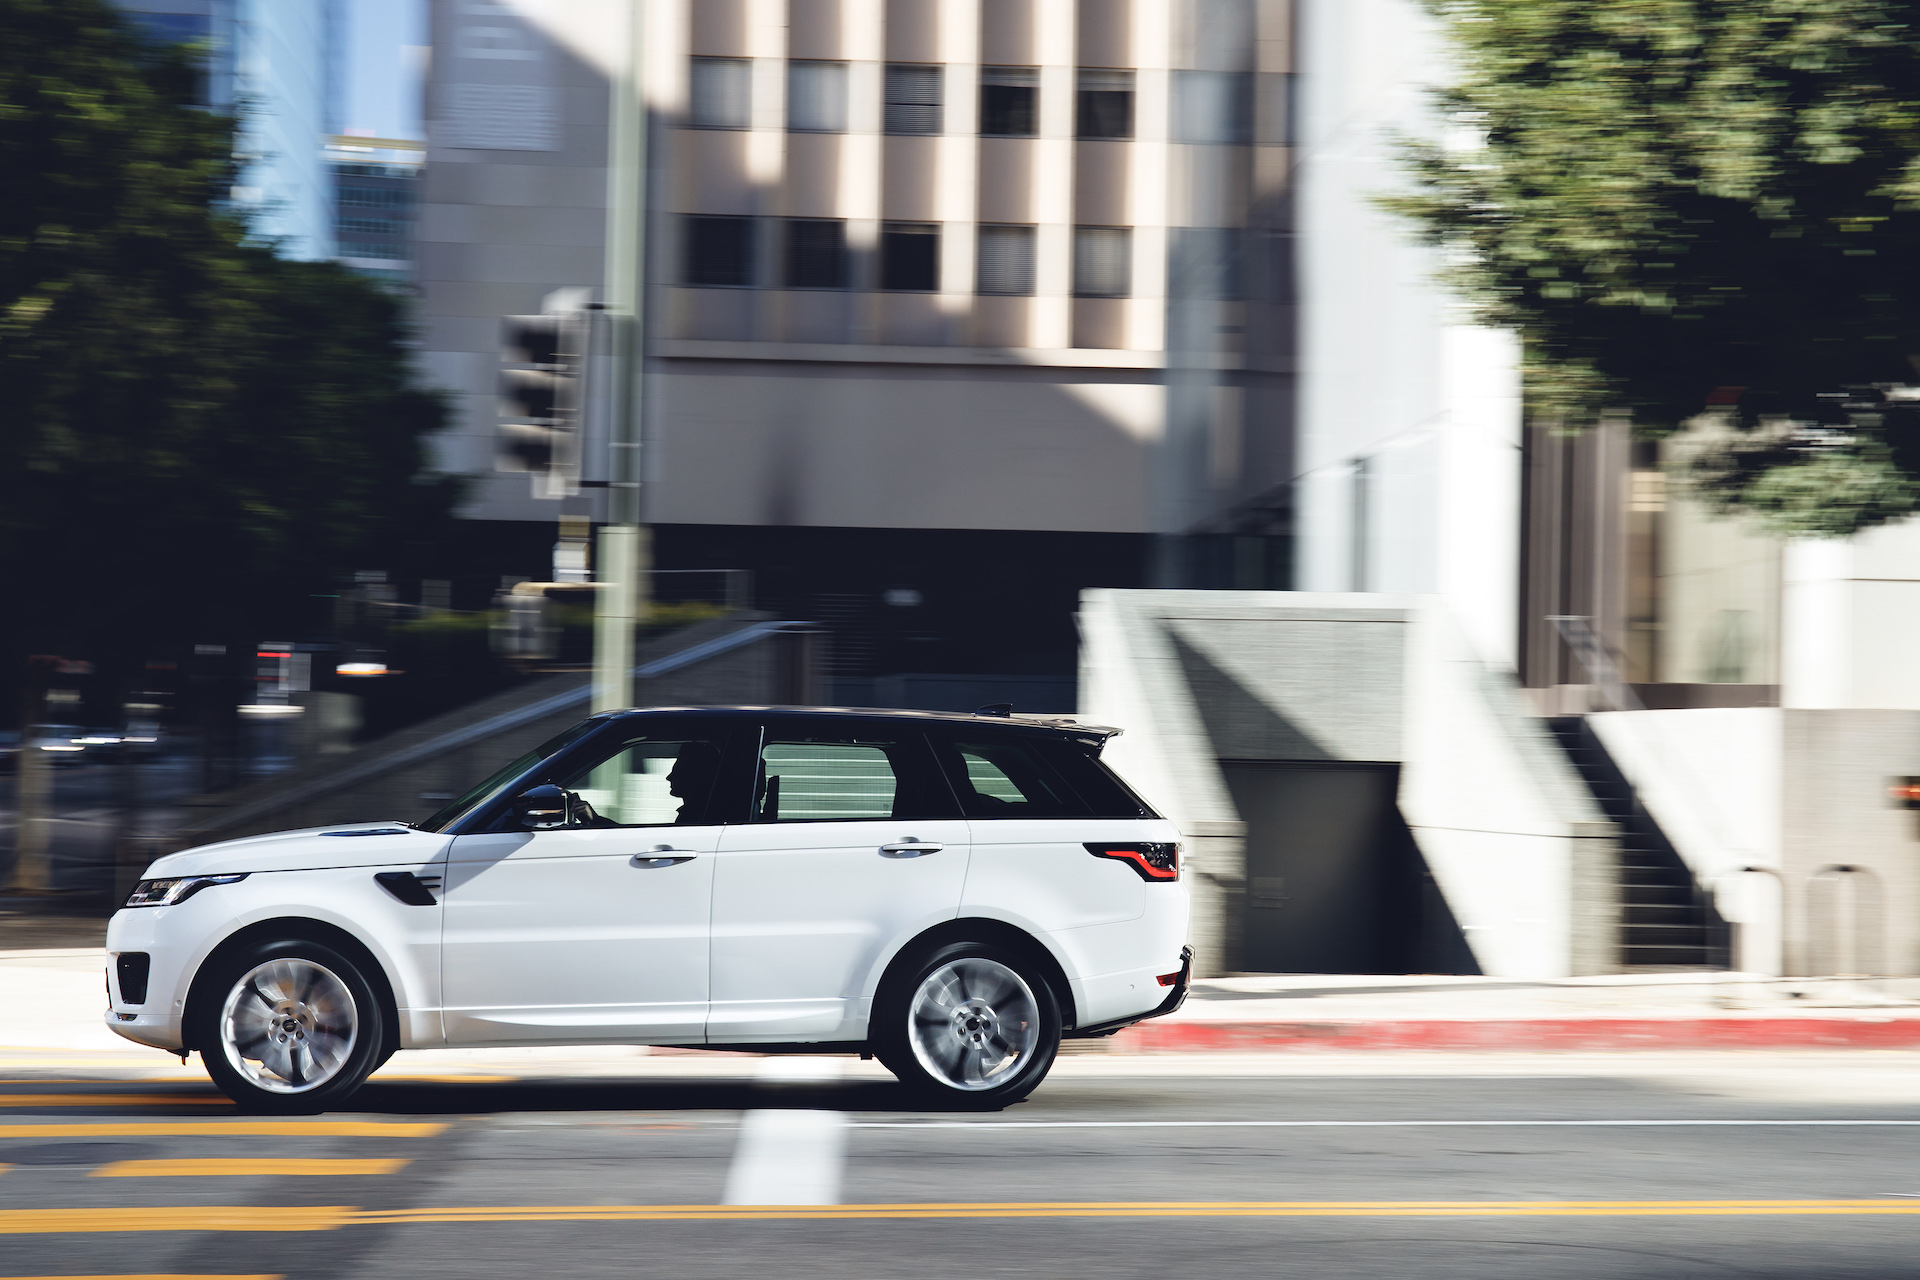 2019 Land Rover Range Rover Sport Review, Ratings, Specs, Prices, and Photos